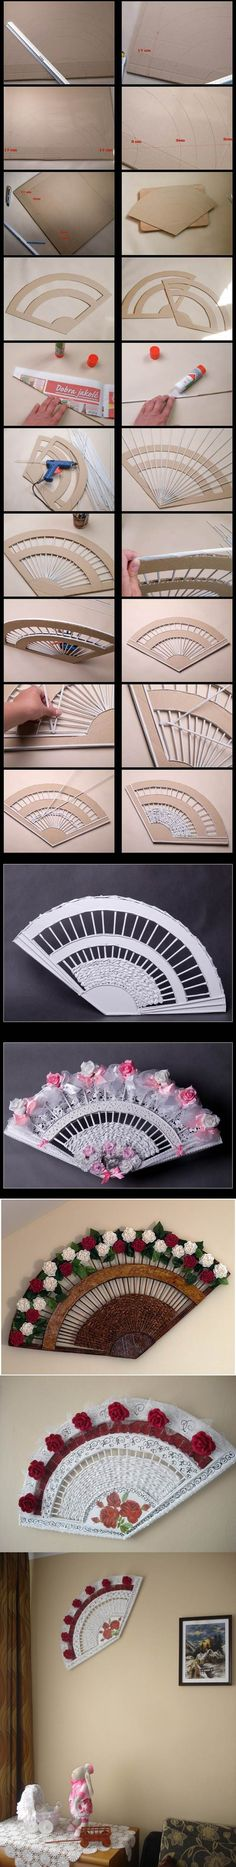 DIY Decorative Fan from Old Newspaper and Cardboard | iCreativeIdeas.com LIKE Us on Facebook ==> https://www.facebook.com/icreativeideas